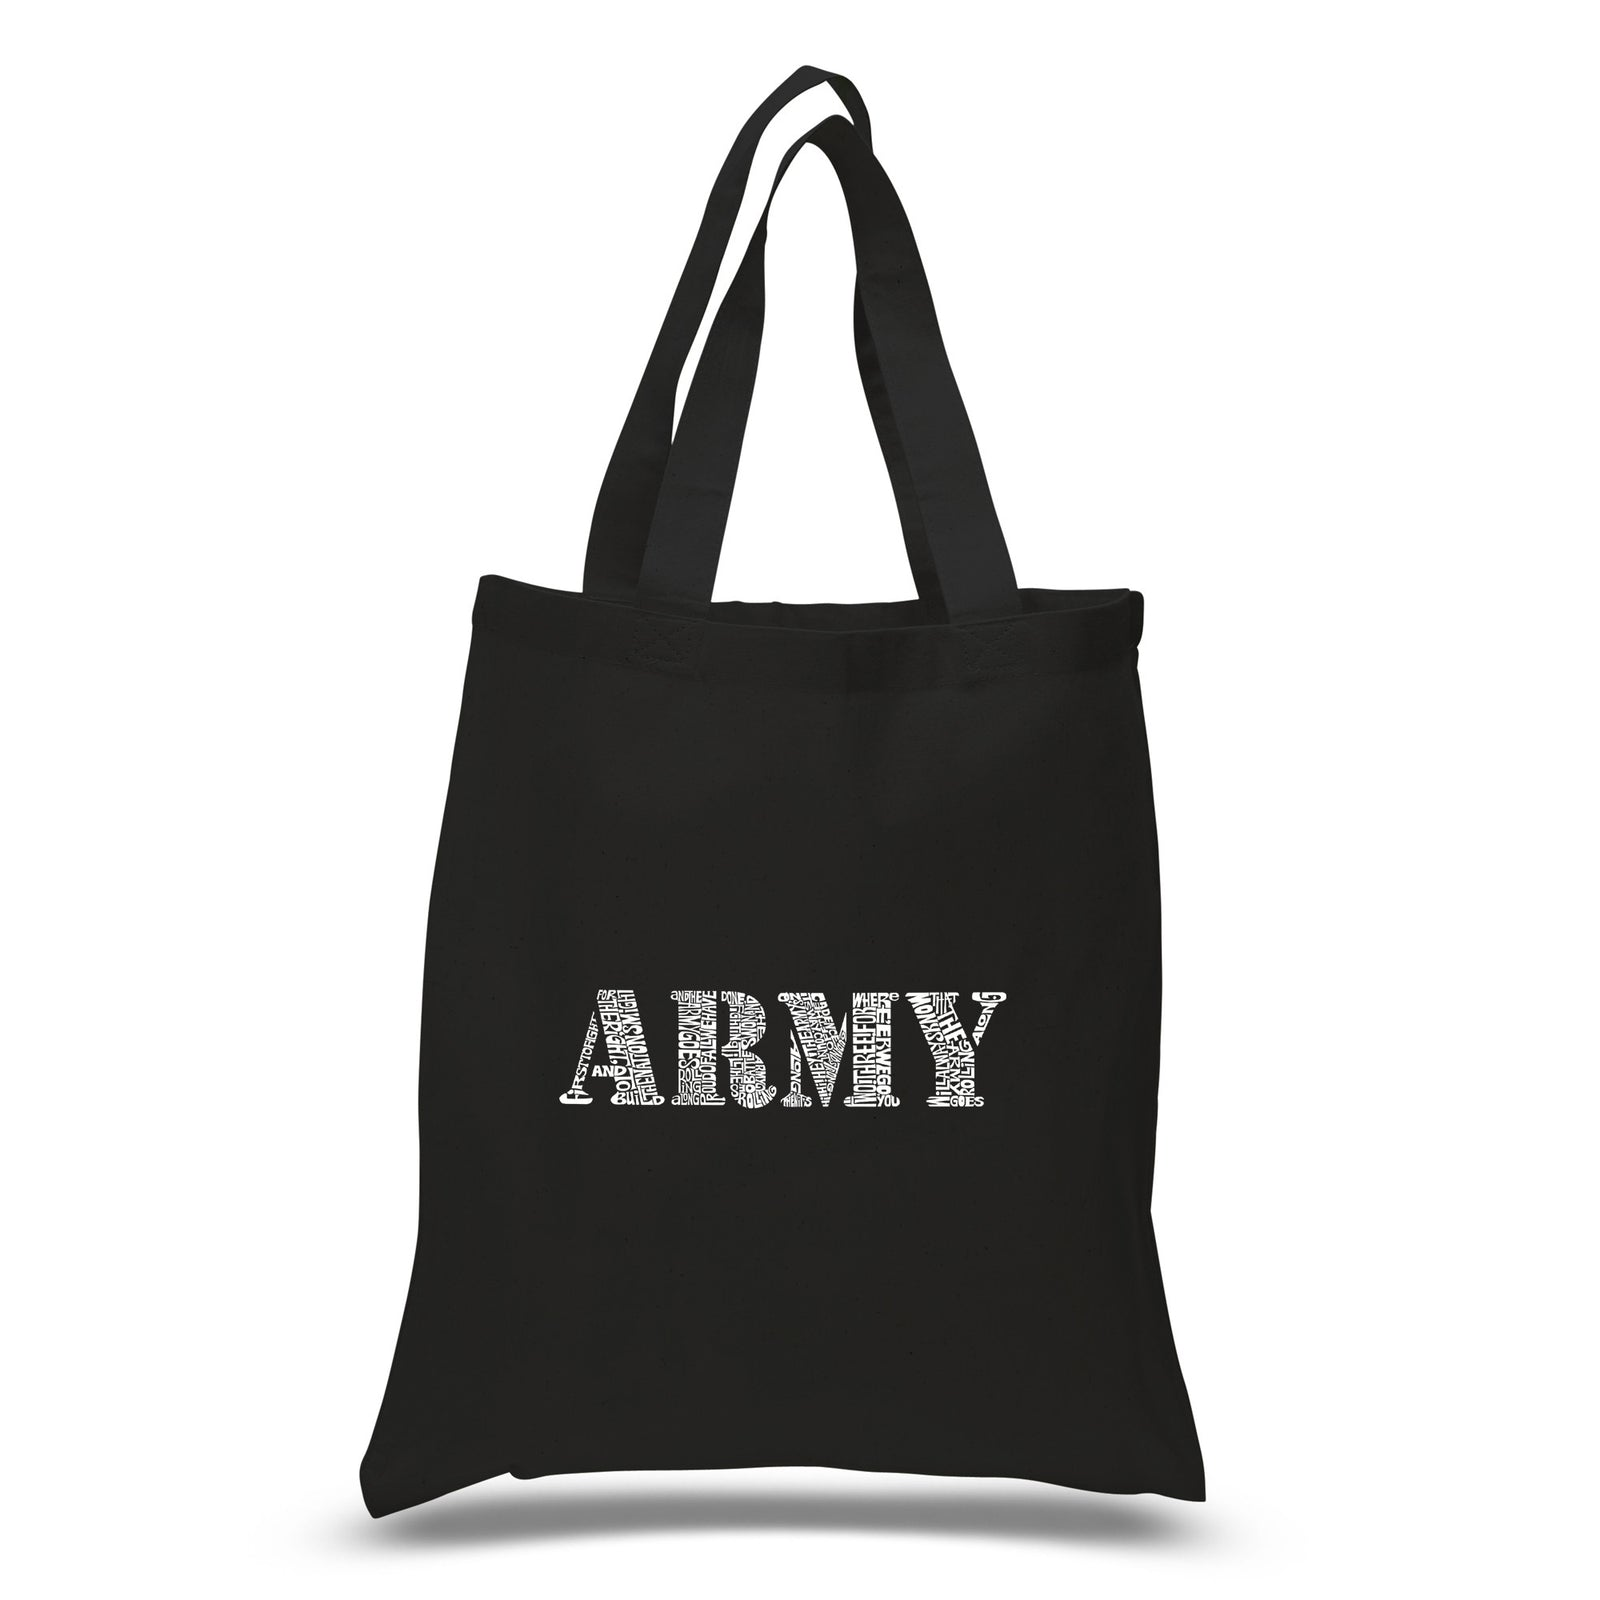 Small Tote Bag - LYRICS TO THE ARMY SONG